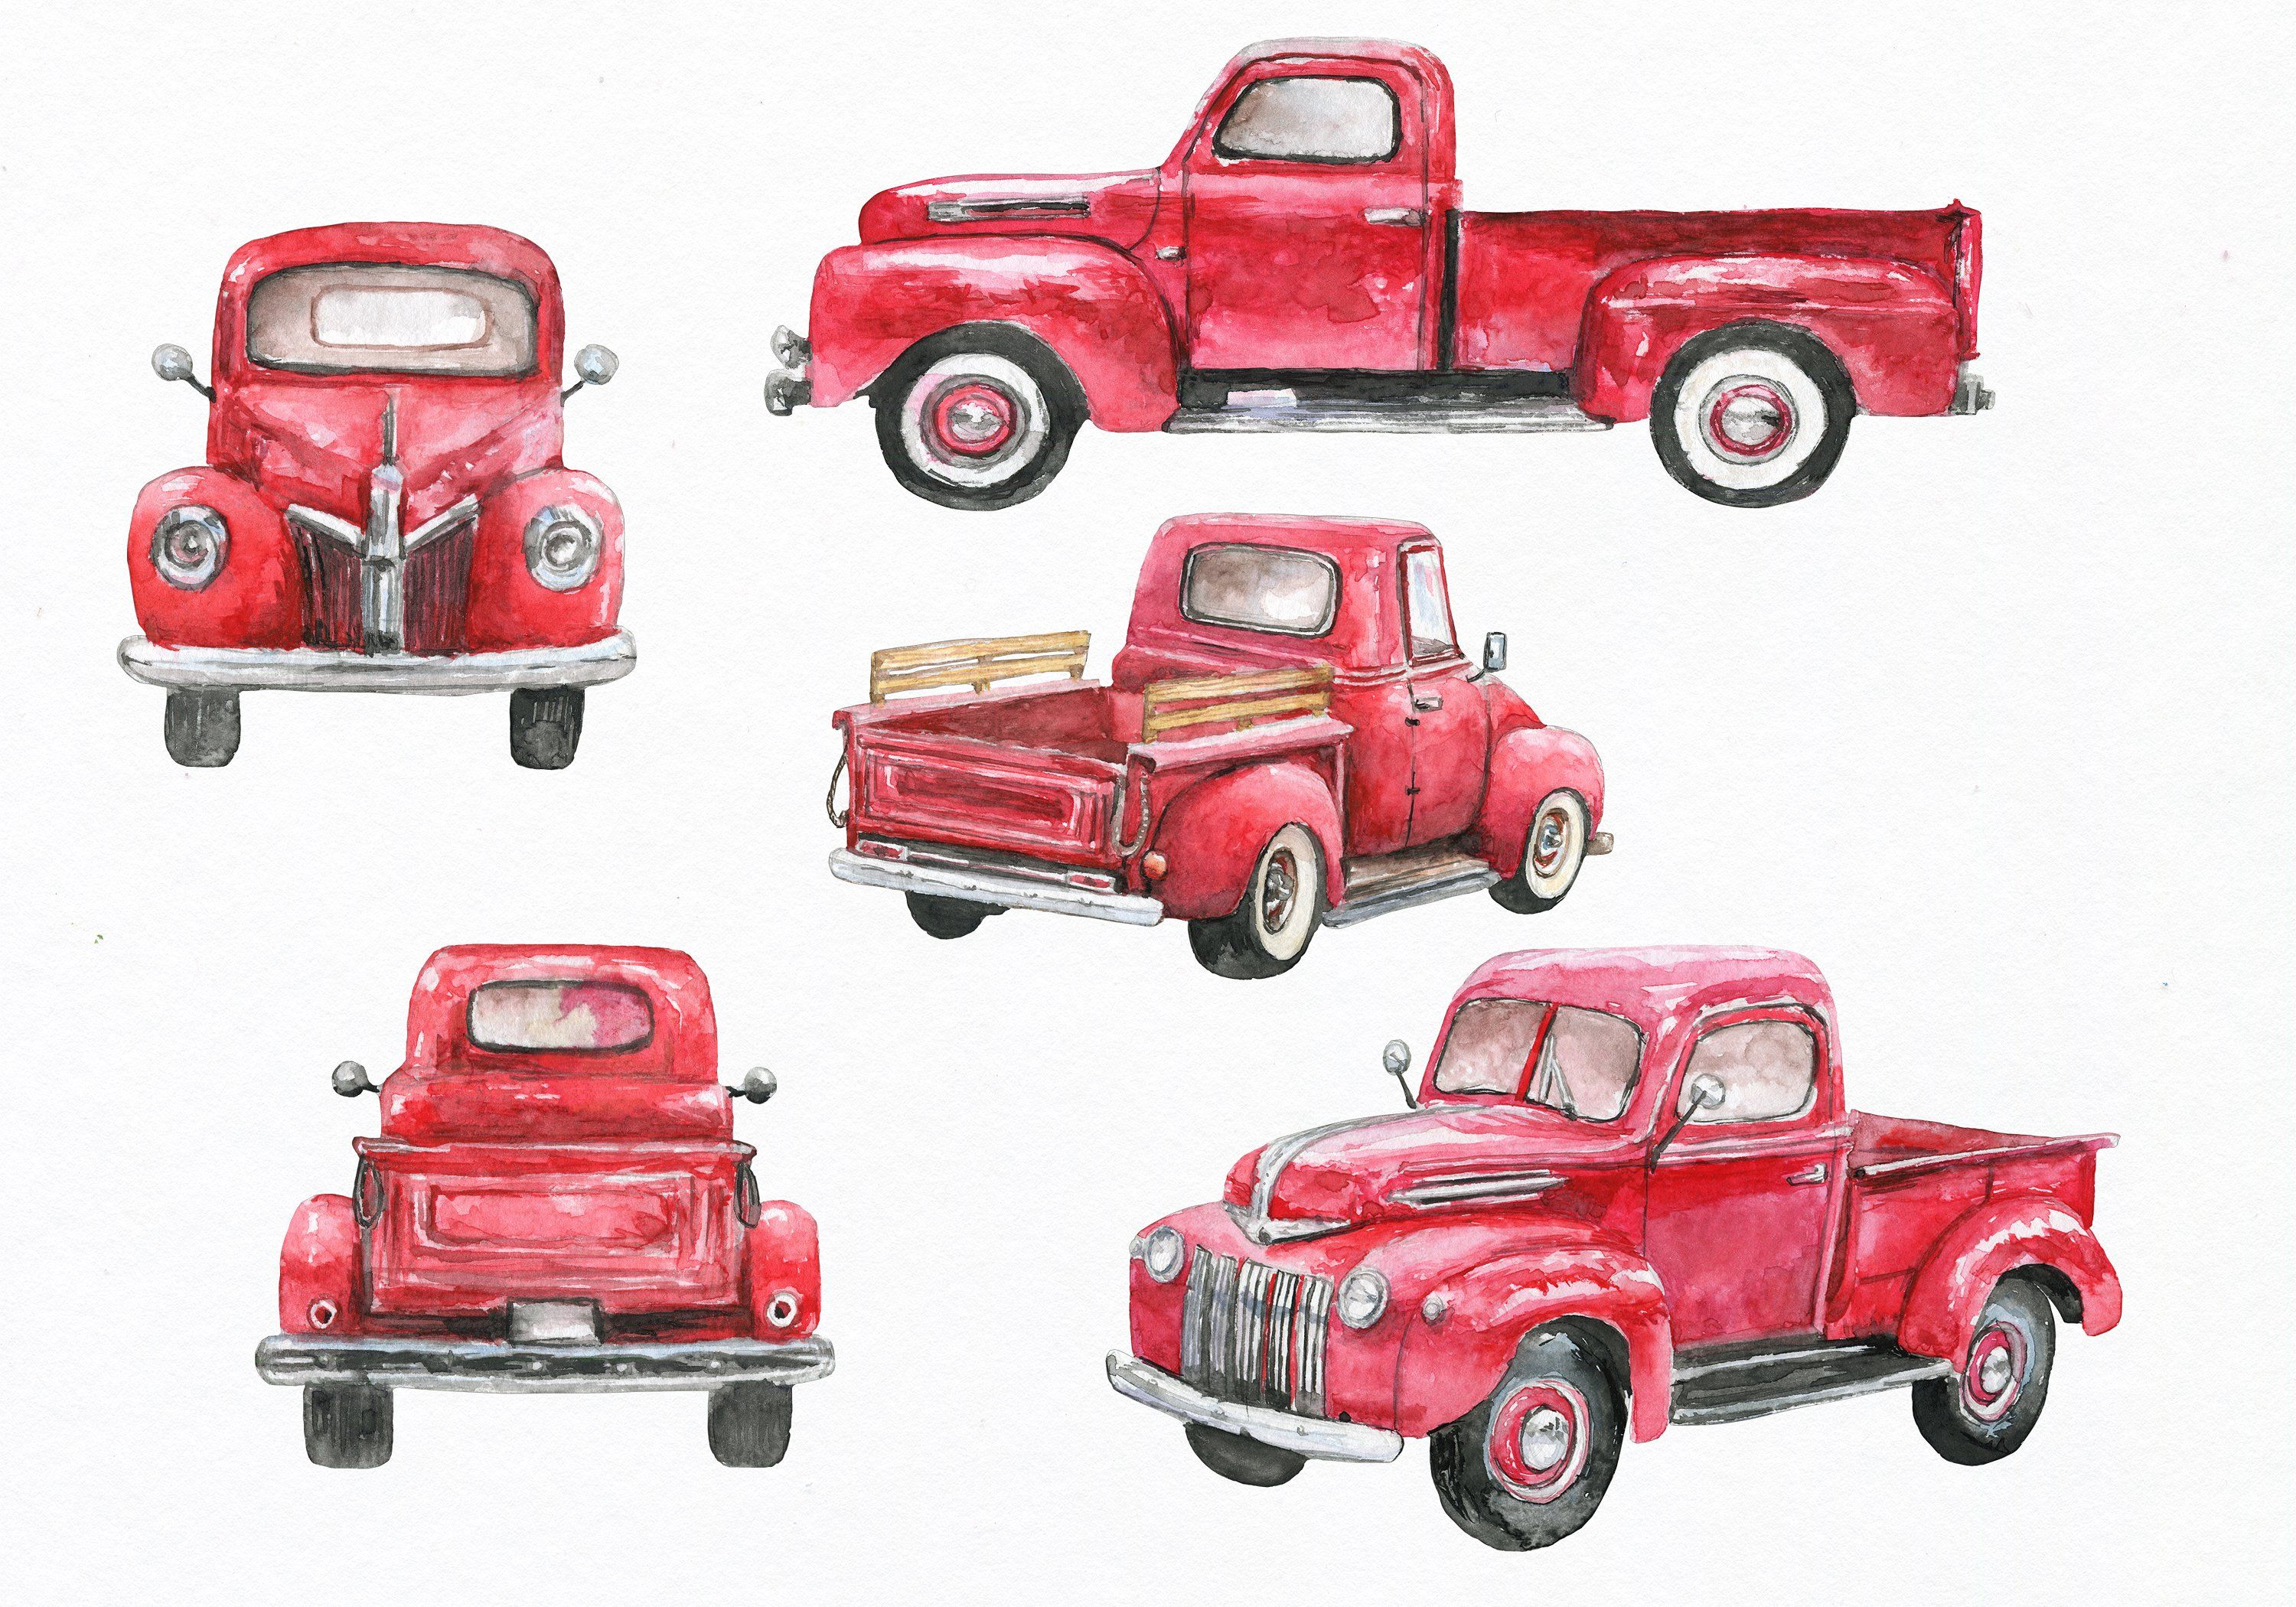 Red truck clipart. Watercolor by EphrazyDesign on @creativemarket.